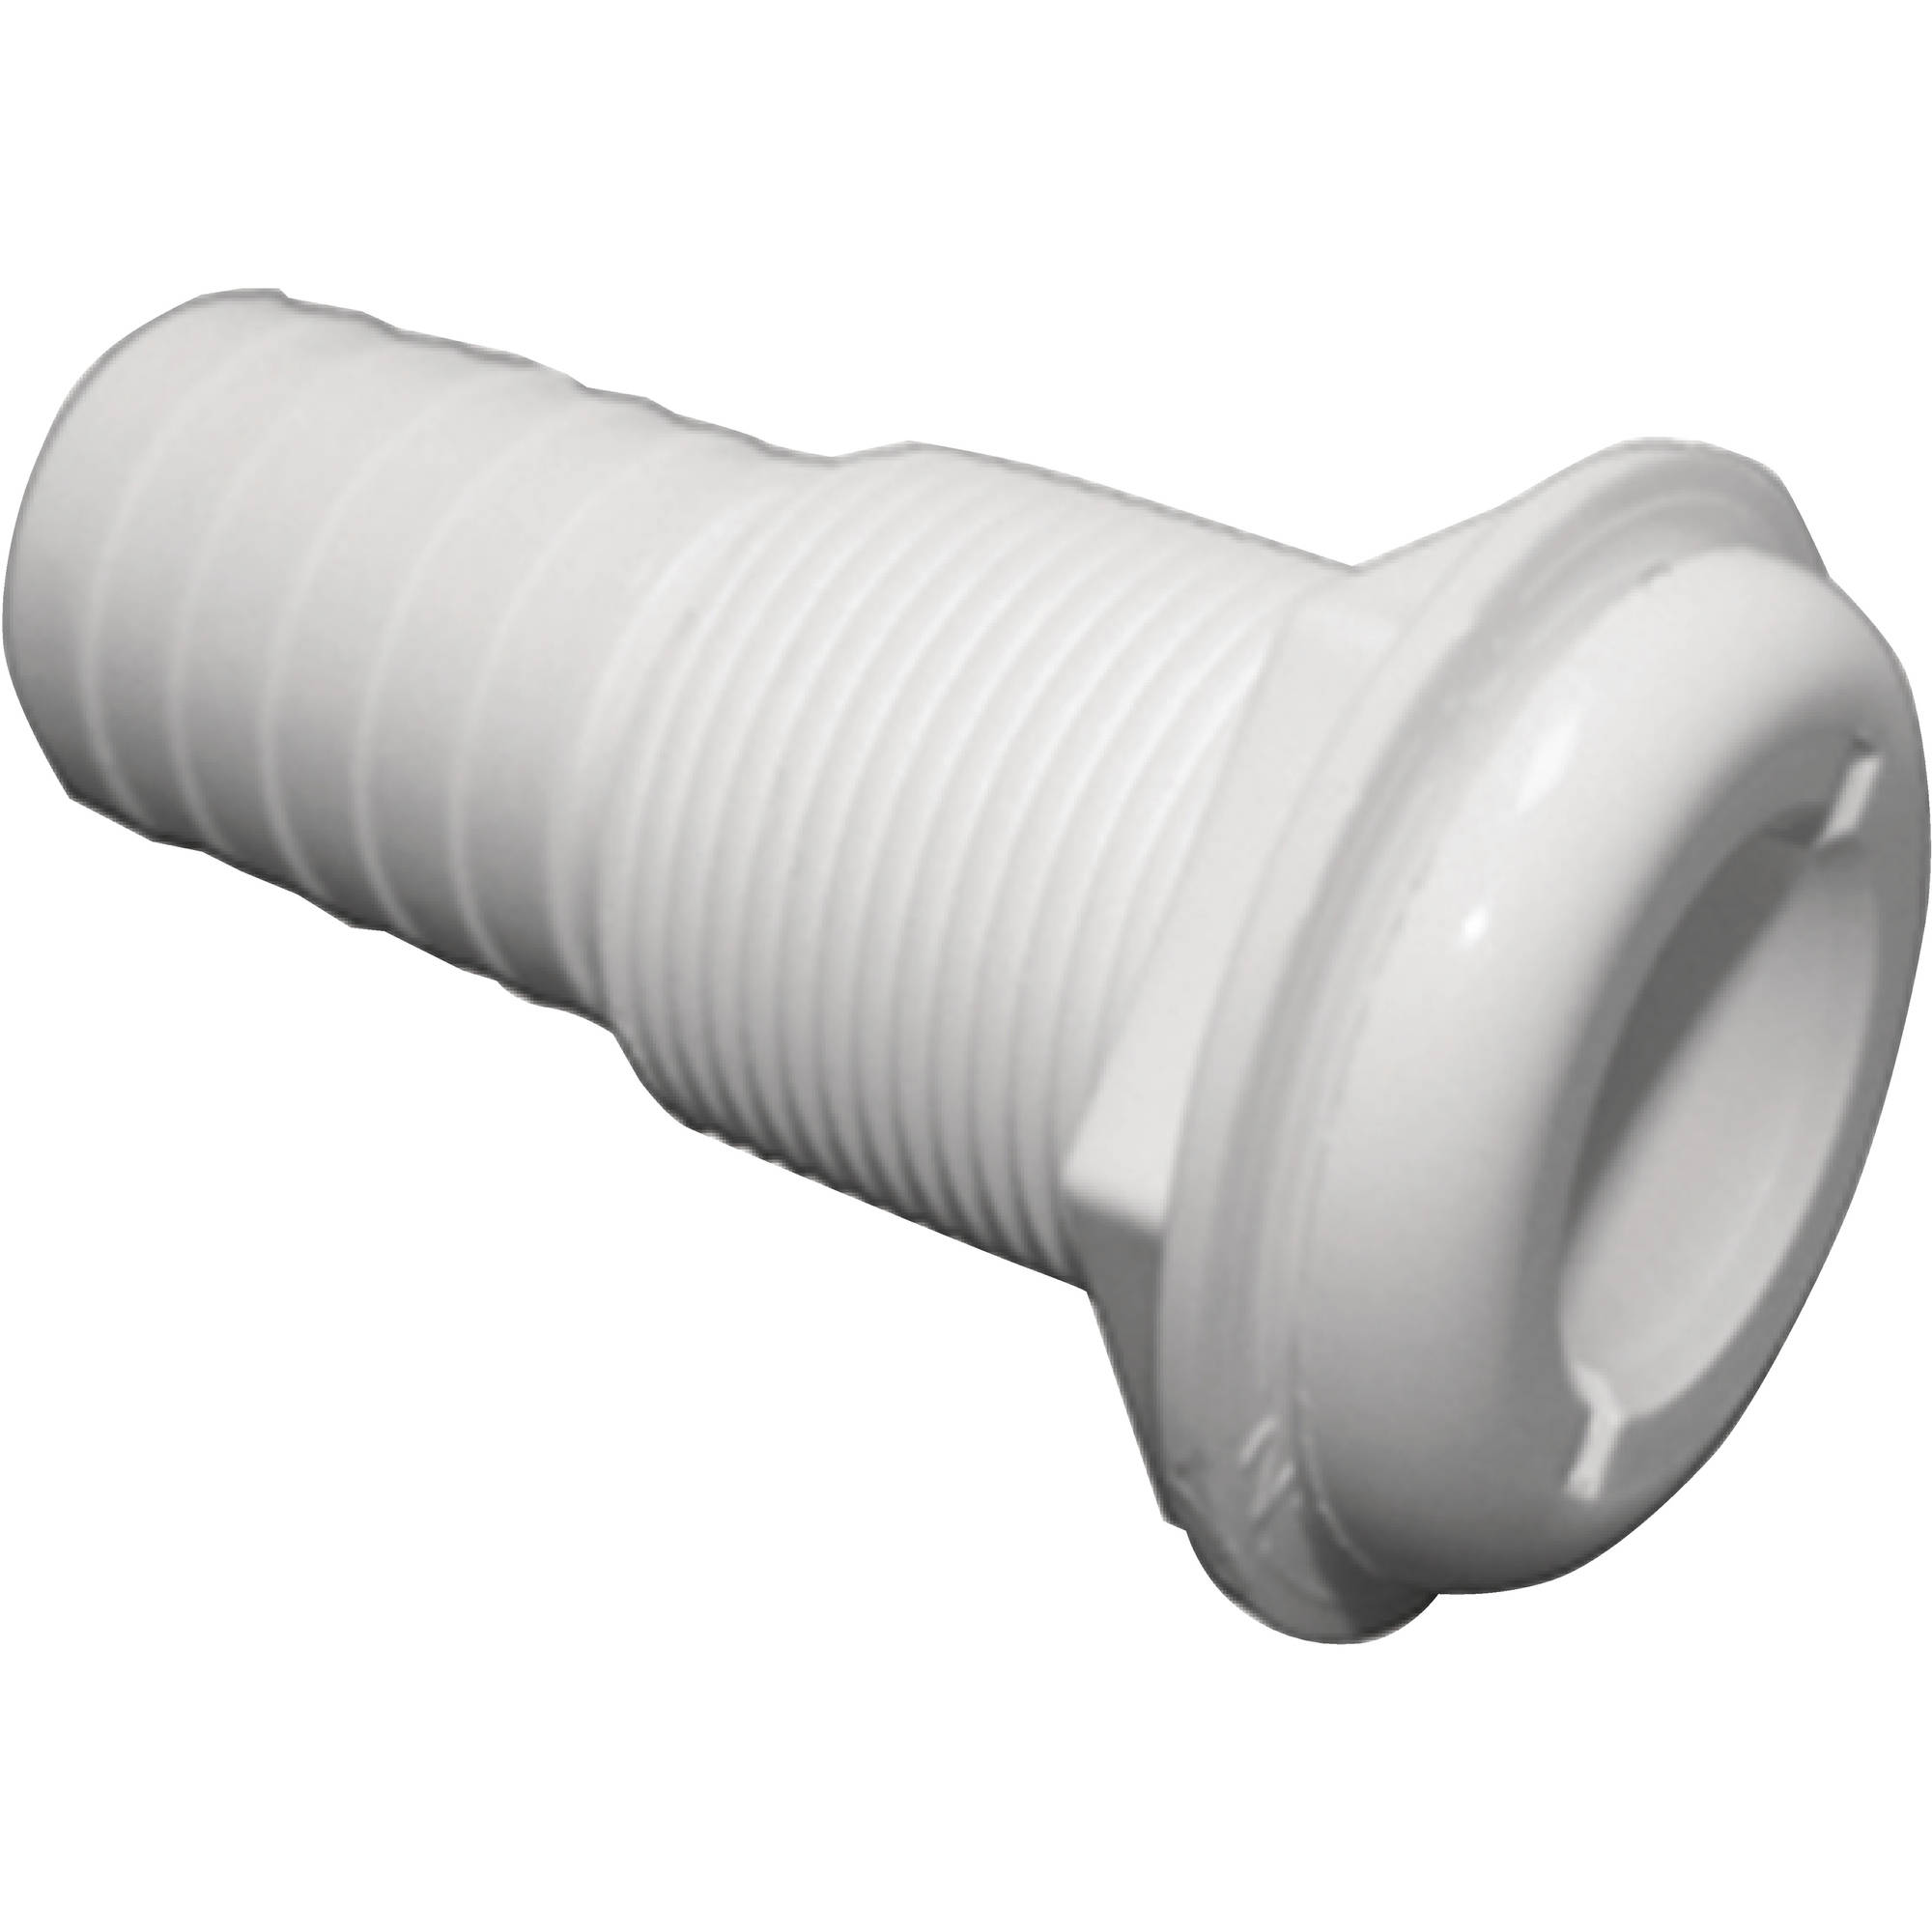 T-H Marine Straight Extra Long Thru-Hull Fitting For Hose, White by T-H Marine Supplies